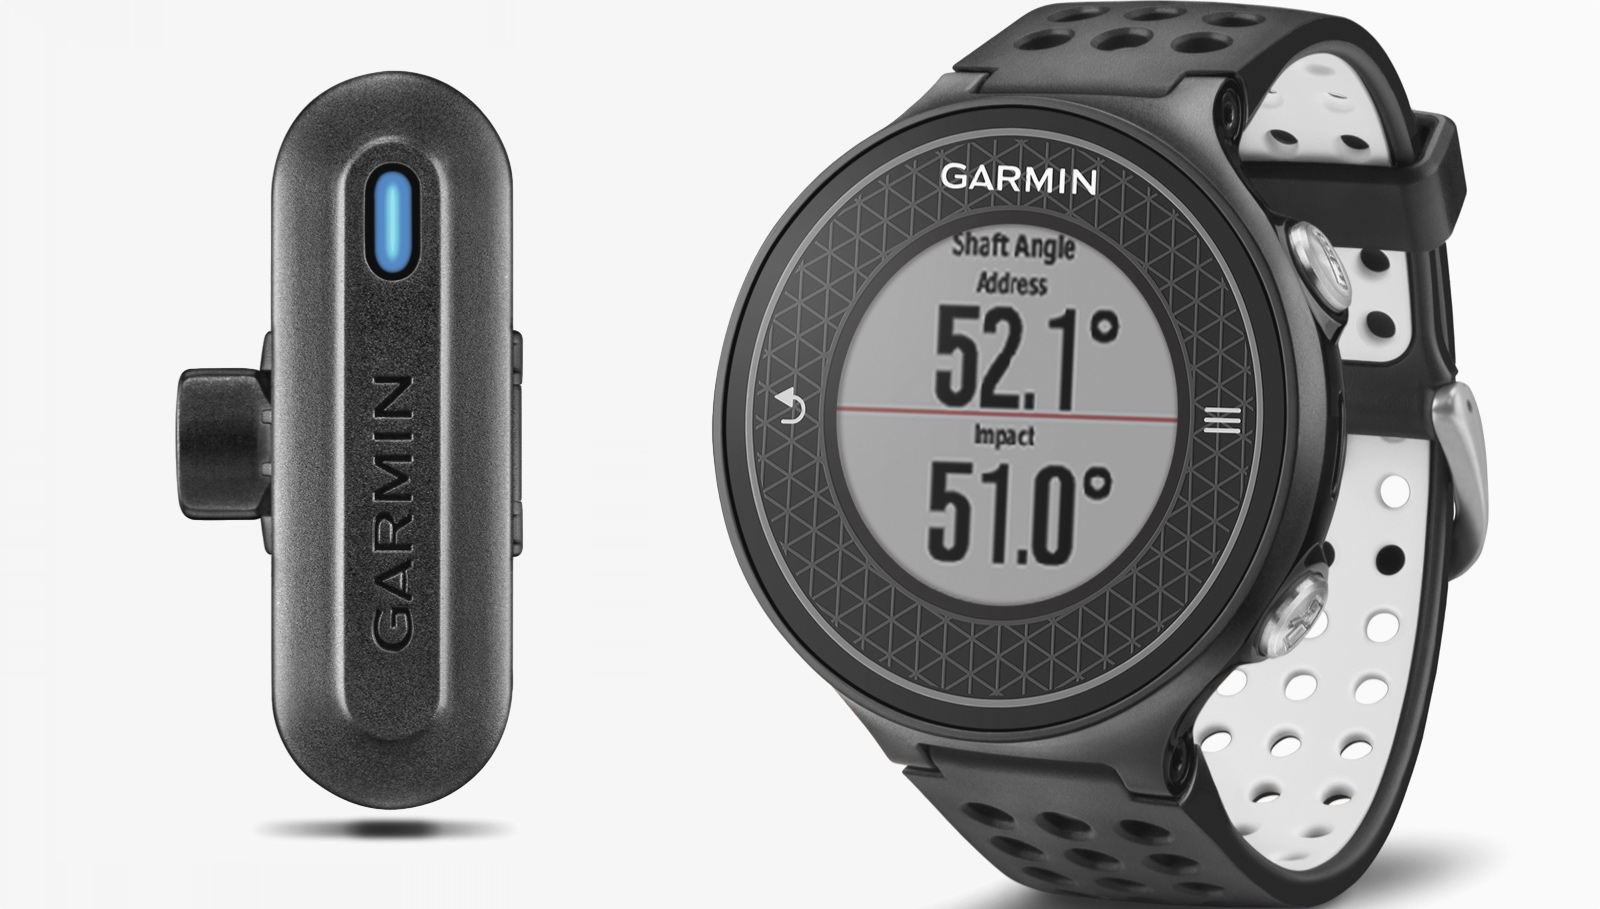 Garmin TruSwing adds real time metrics